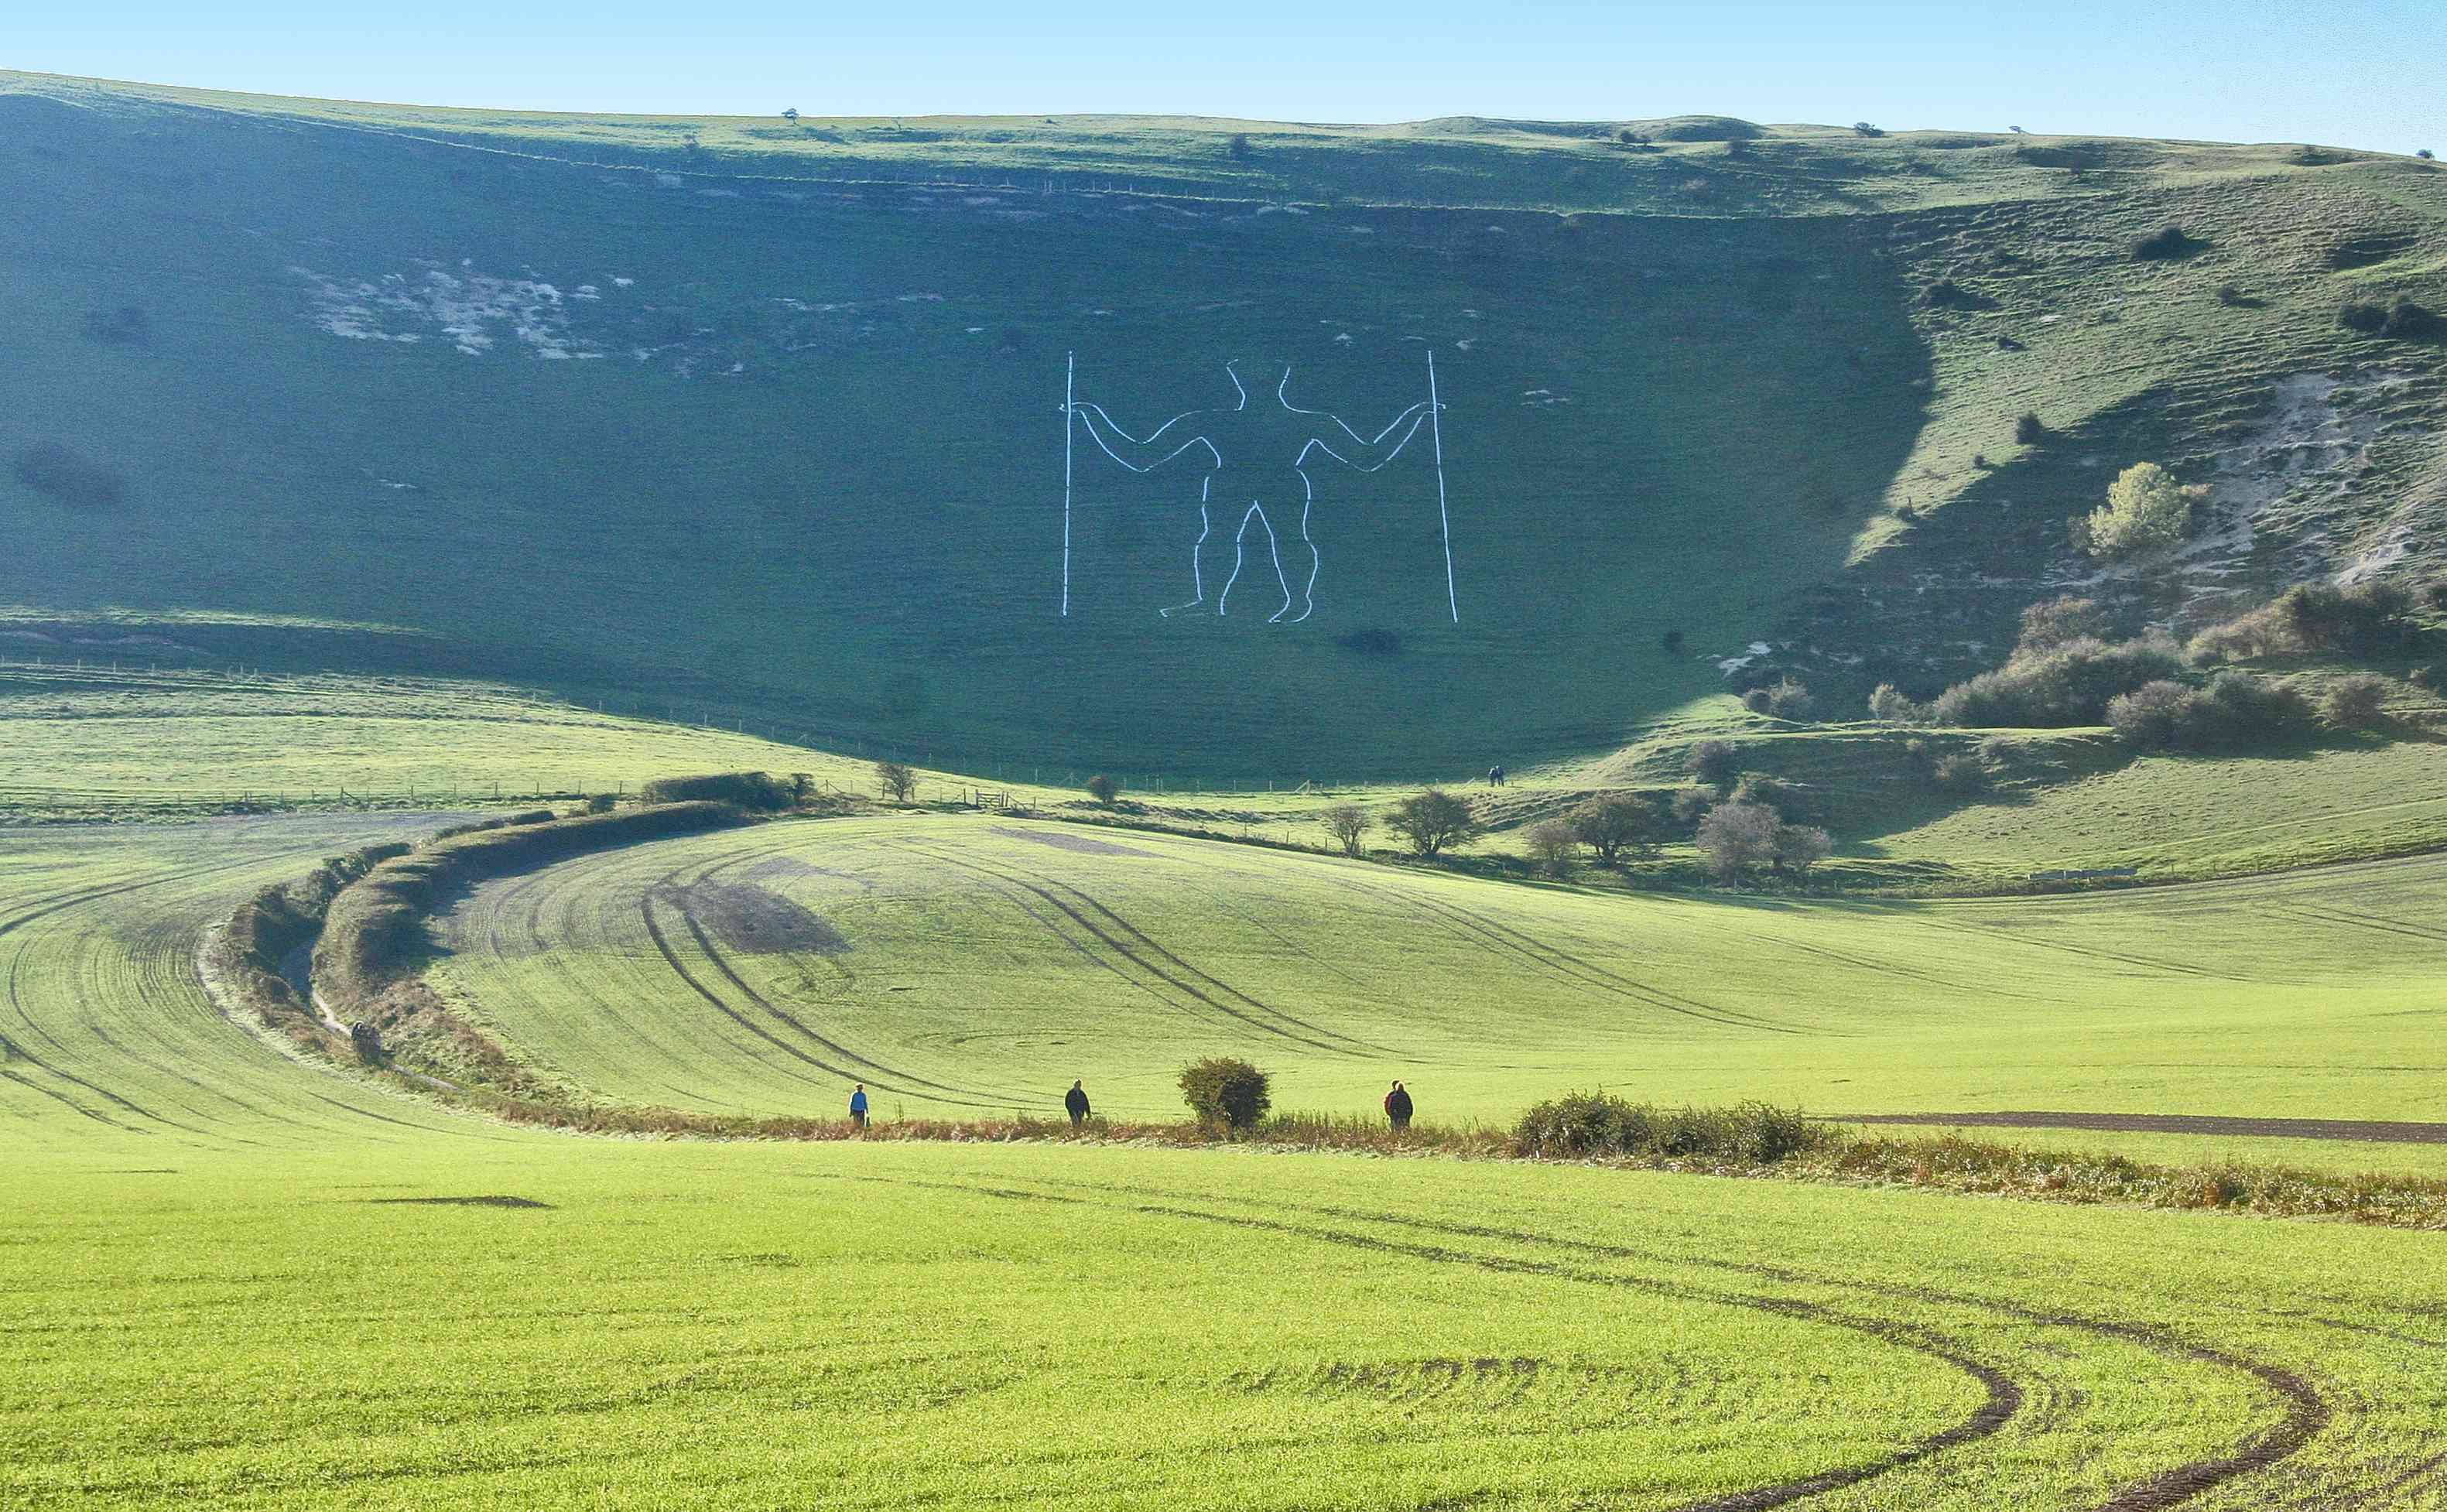 a chalk carving of Long Man of Wilmington hill carved into a steep green hill beneath a bright blue sky with rolling green hills and a few trees in the foreground